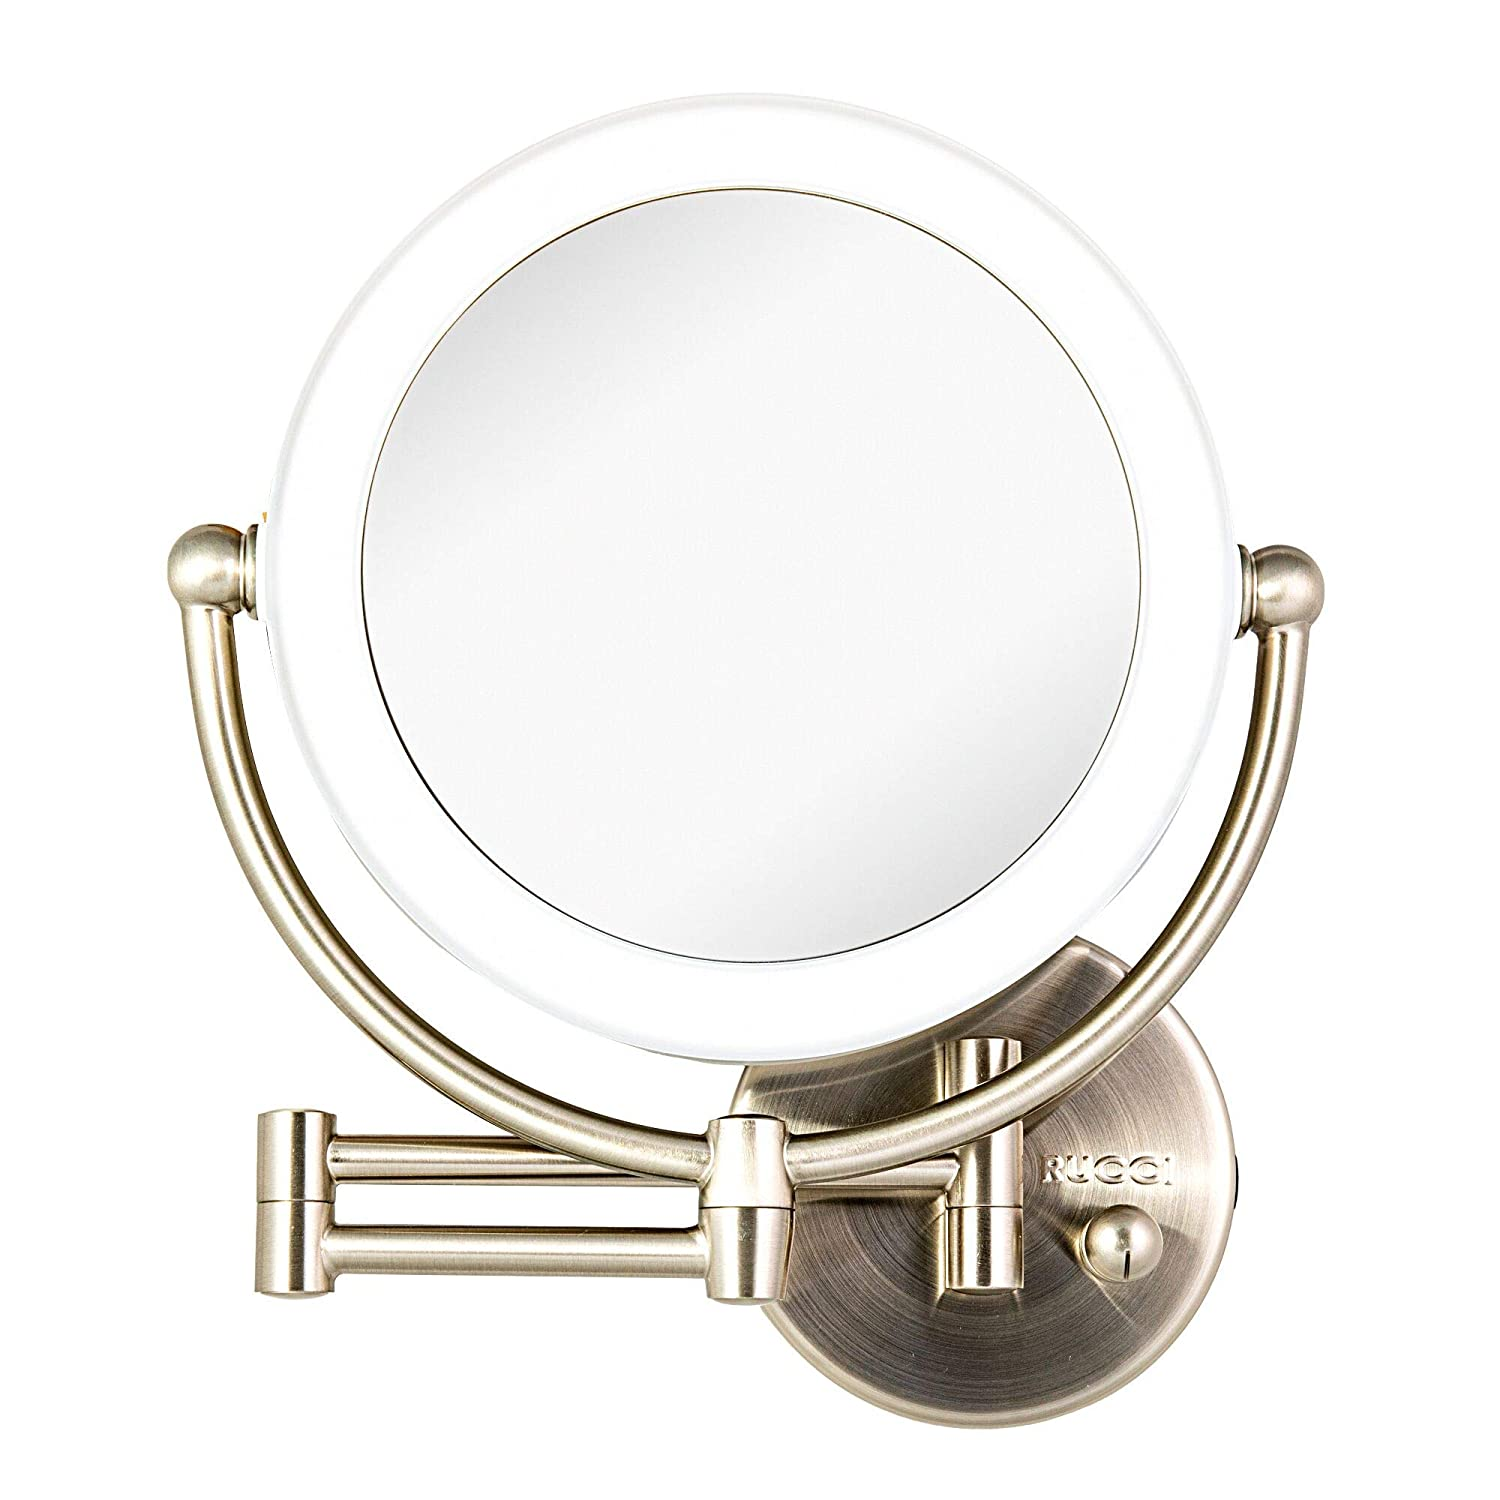 Wall Mount LED Lighted Makeup Mirror, AC Adaptor, 10x 1x Magnification, Satin Nickel Finish 8.6 D x 17.5 L by Rucci